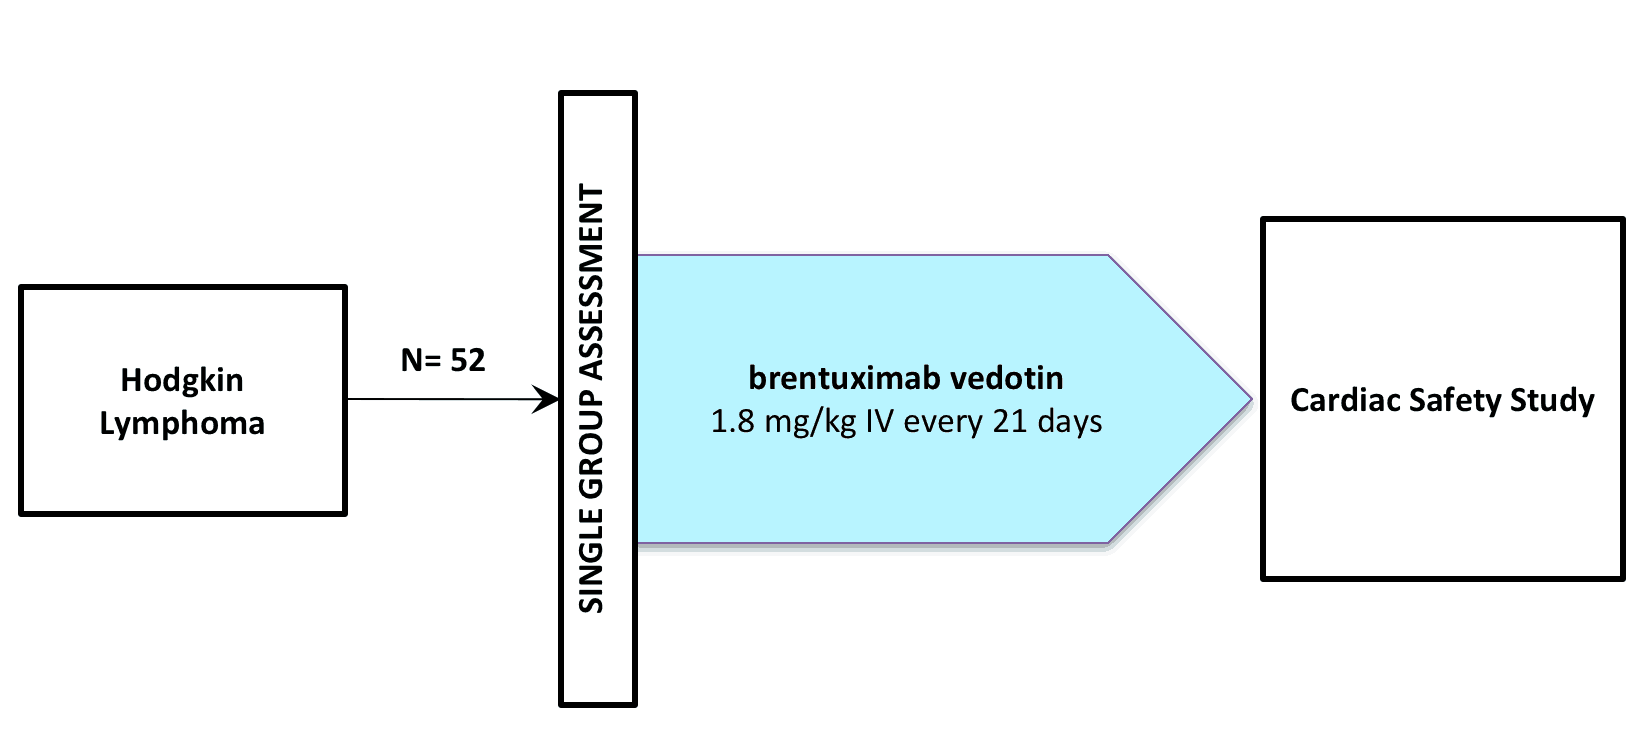 NCT01026233 (CLINICAL TRIAL / BRENTUXIMAB VEDOTIN / SGN-035 / ADCETRIS®)